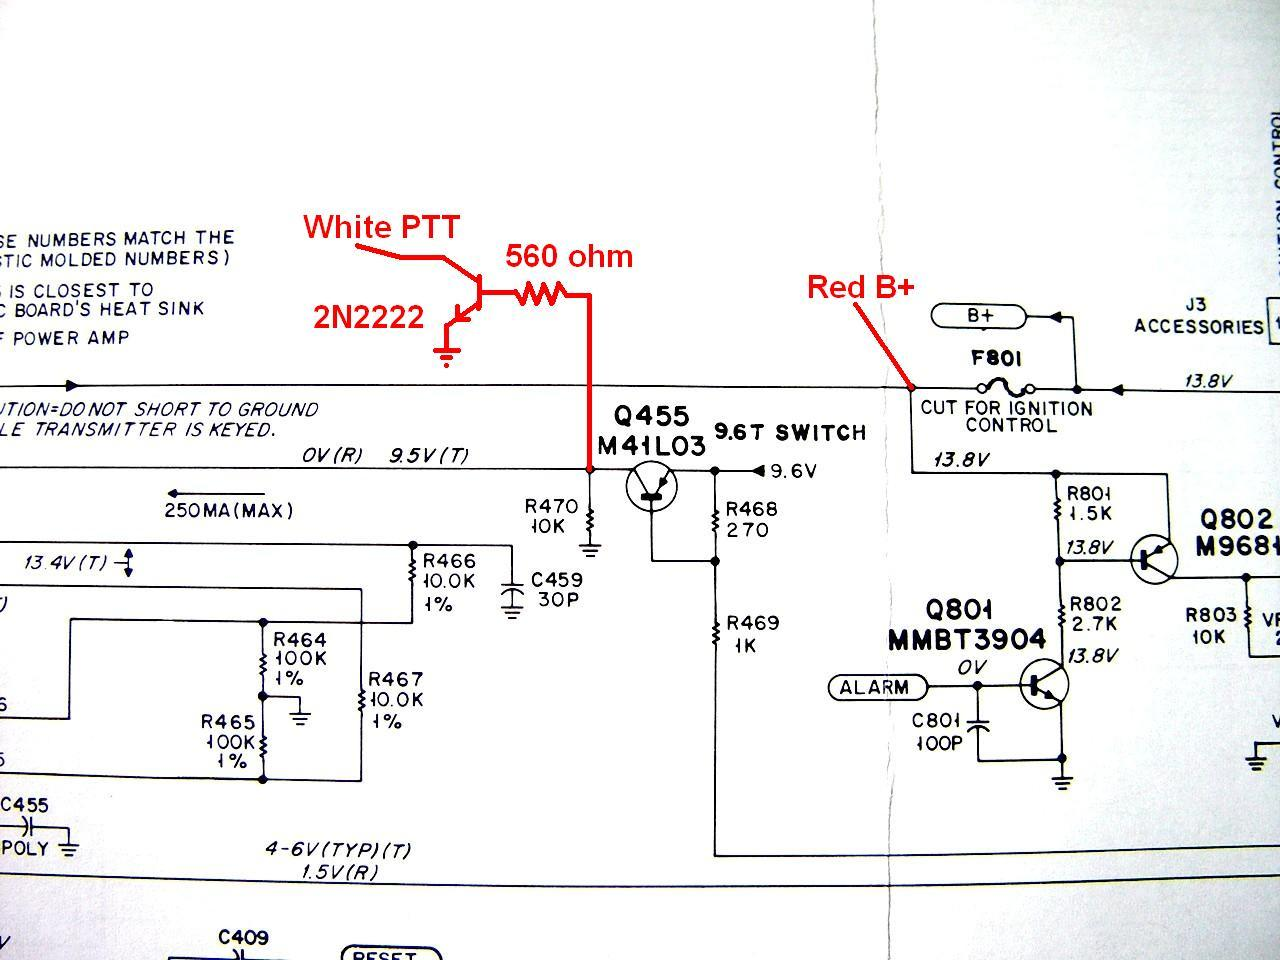 Adding Analog Modulation To A Motorola Nucleus Ii Transmitter Wiring Diagram 96v The Only Available Openings Are Too Small Bring Wires Through I Decided Remove Power Amplifier This Reduces Weight Of Radio And